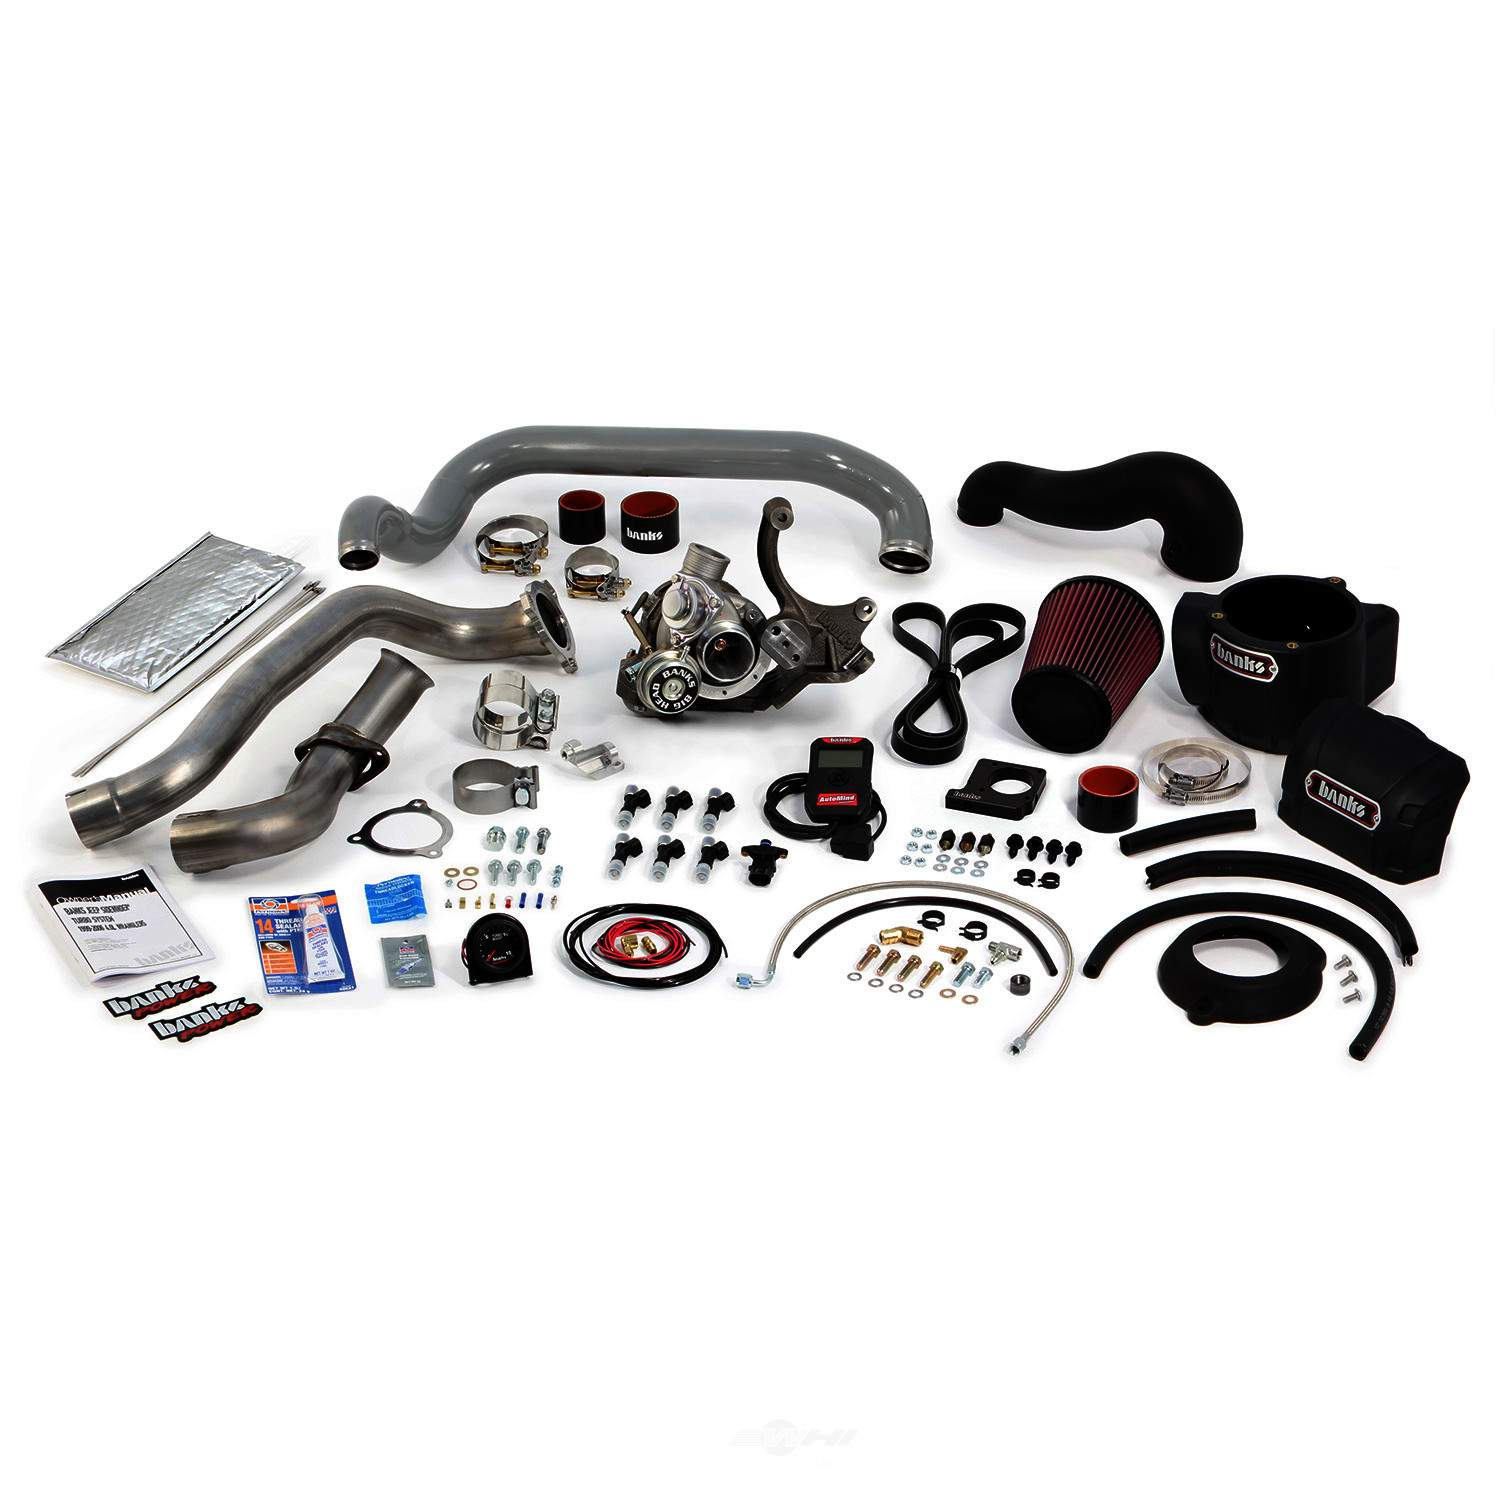 BANKS POWER - Sidewinder Turbo System - Non-Intercooled - w/ AutoMind Handheld Program - B1T 24244